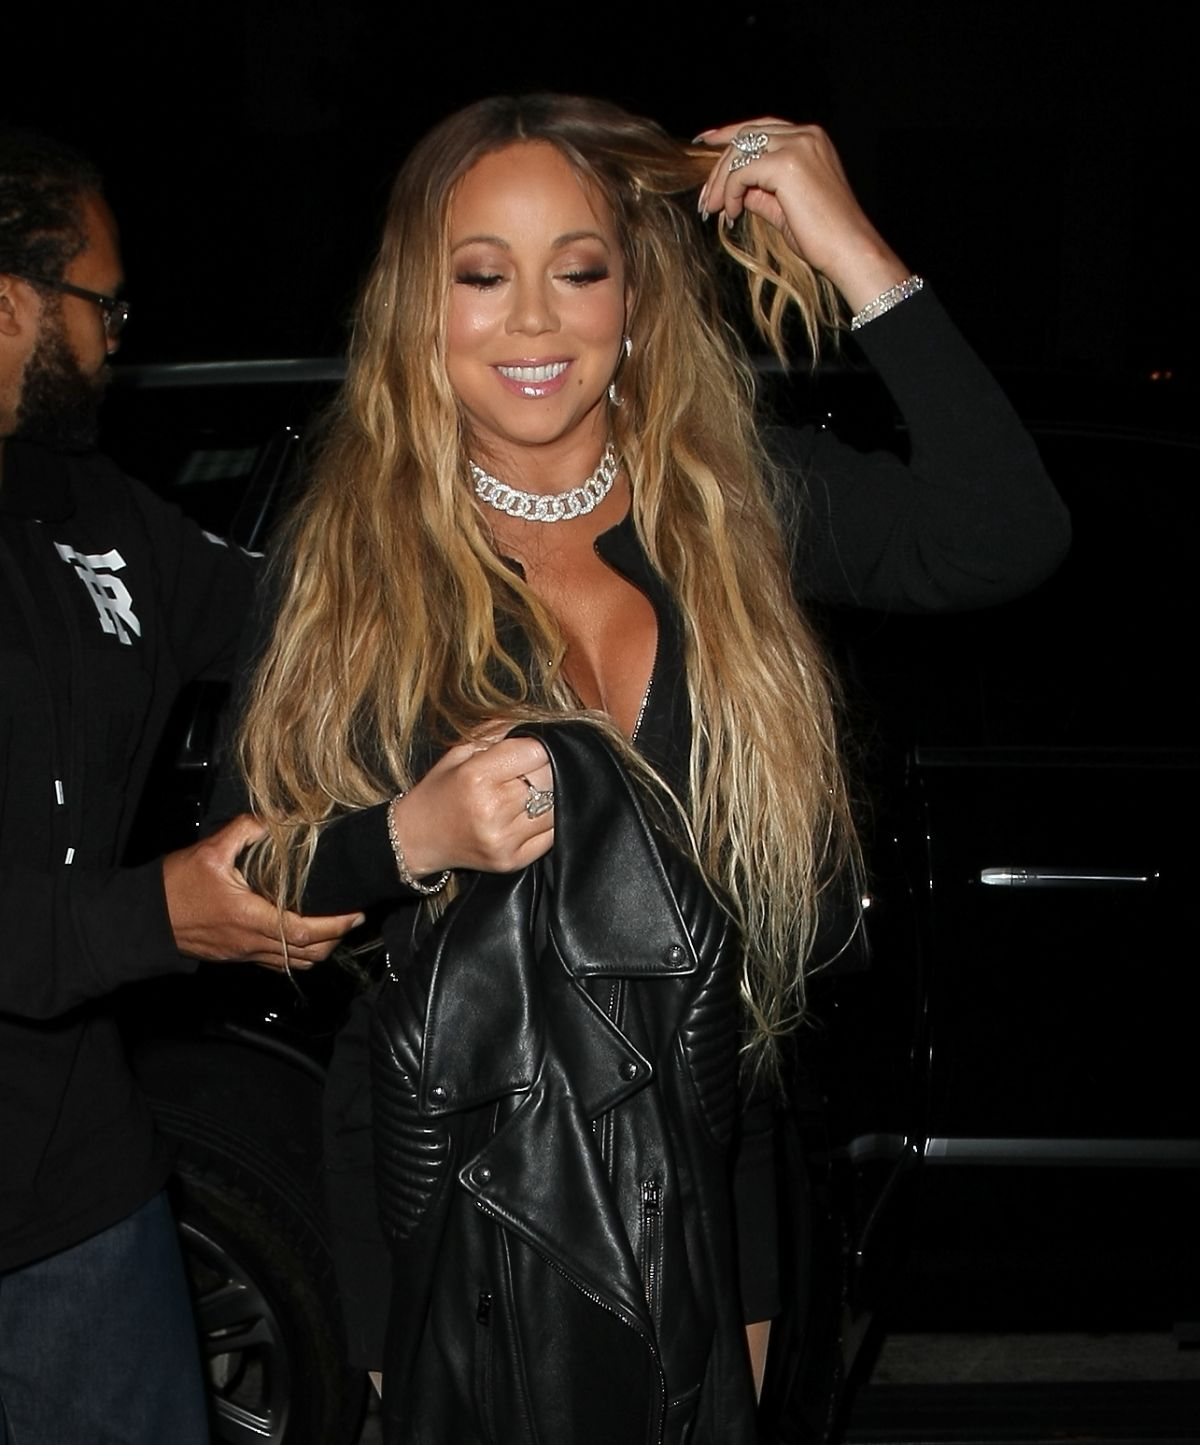 MARIAH CAREY at Catch LA in West Hollywood 05/25/2017